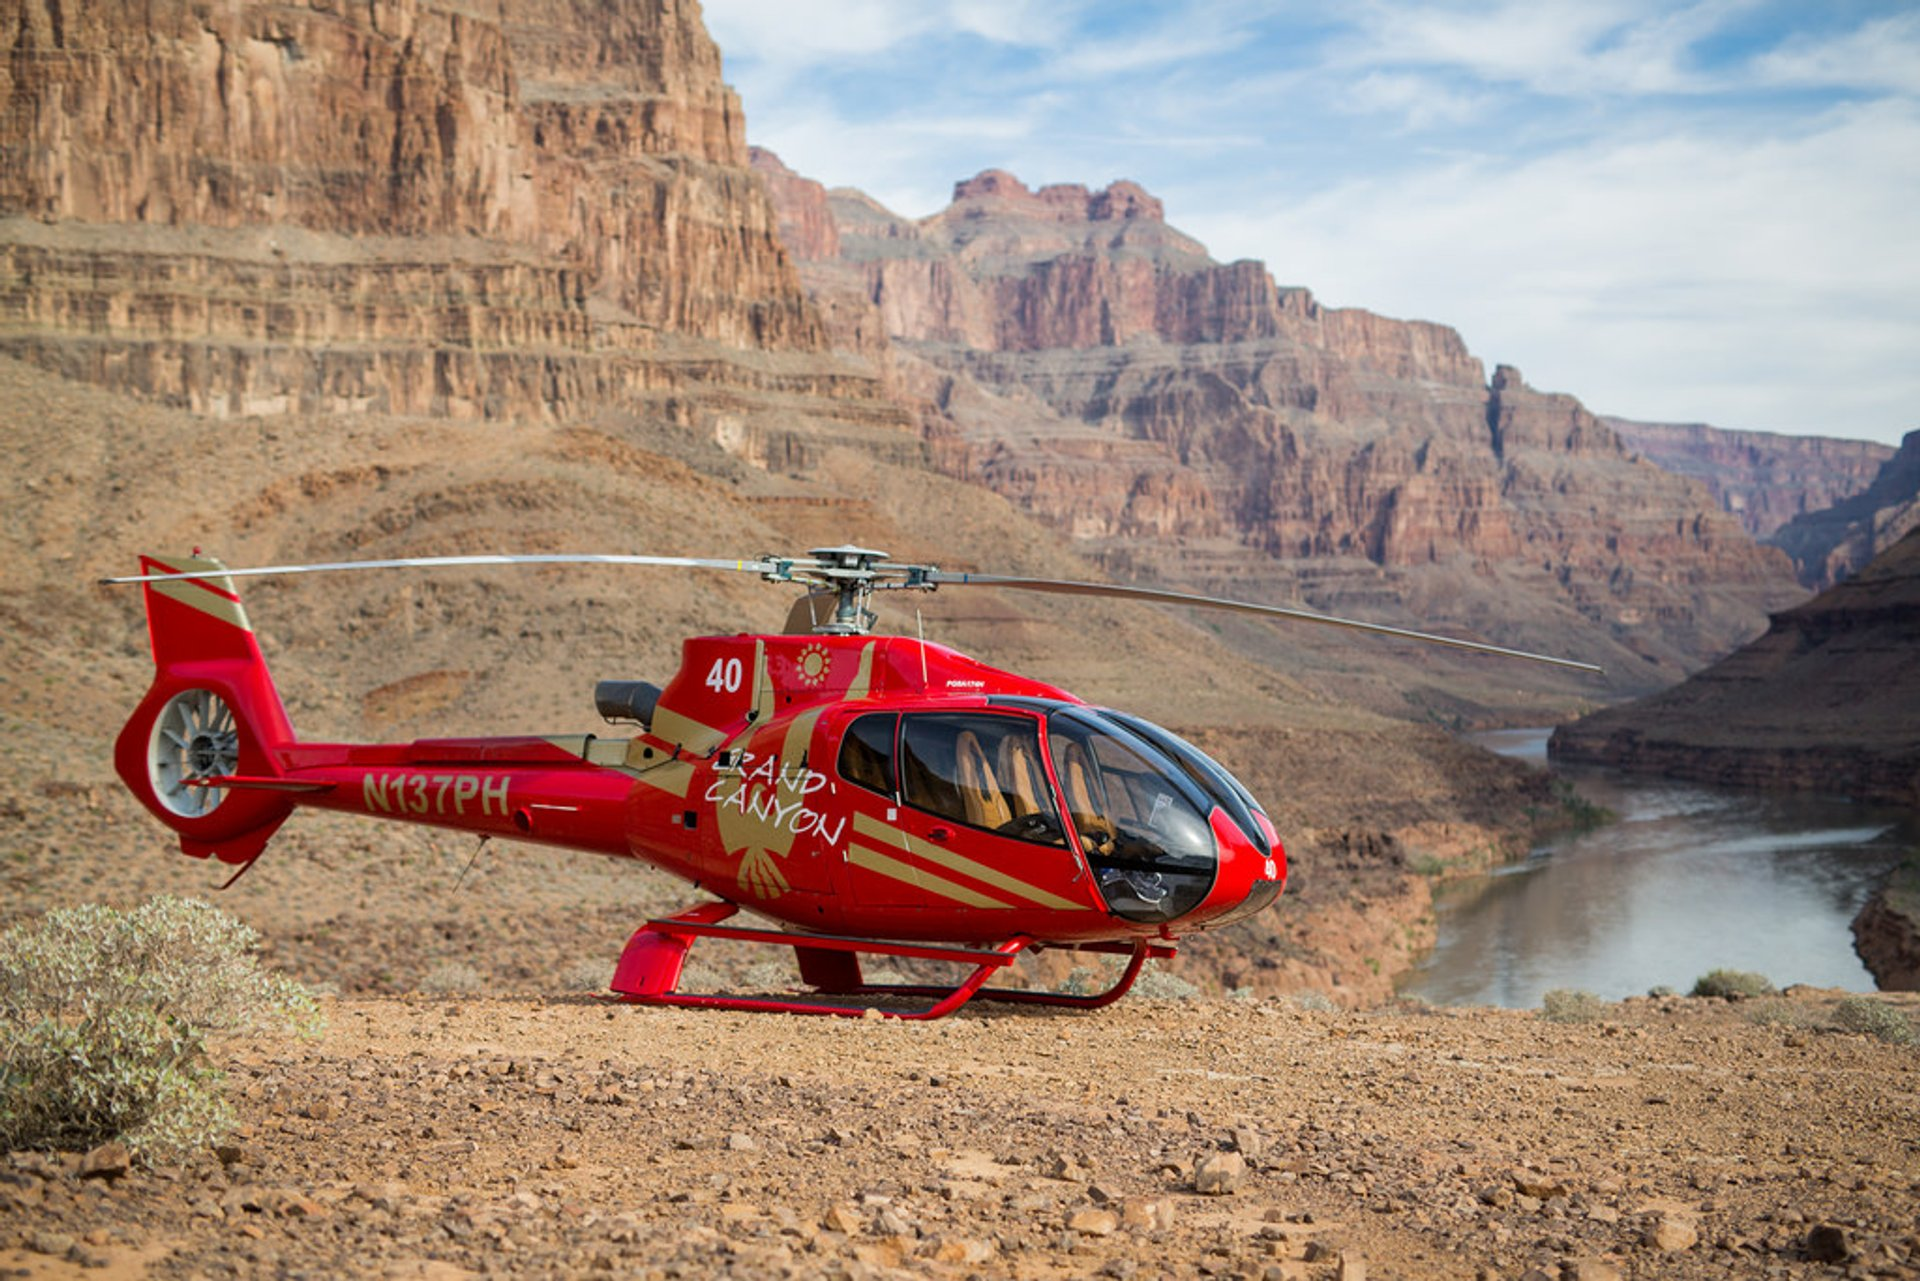 Helicopter Tours in Grand Canyon 2020 - Best Time